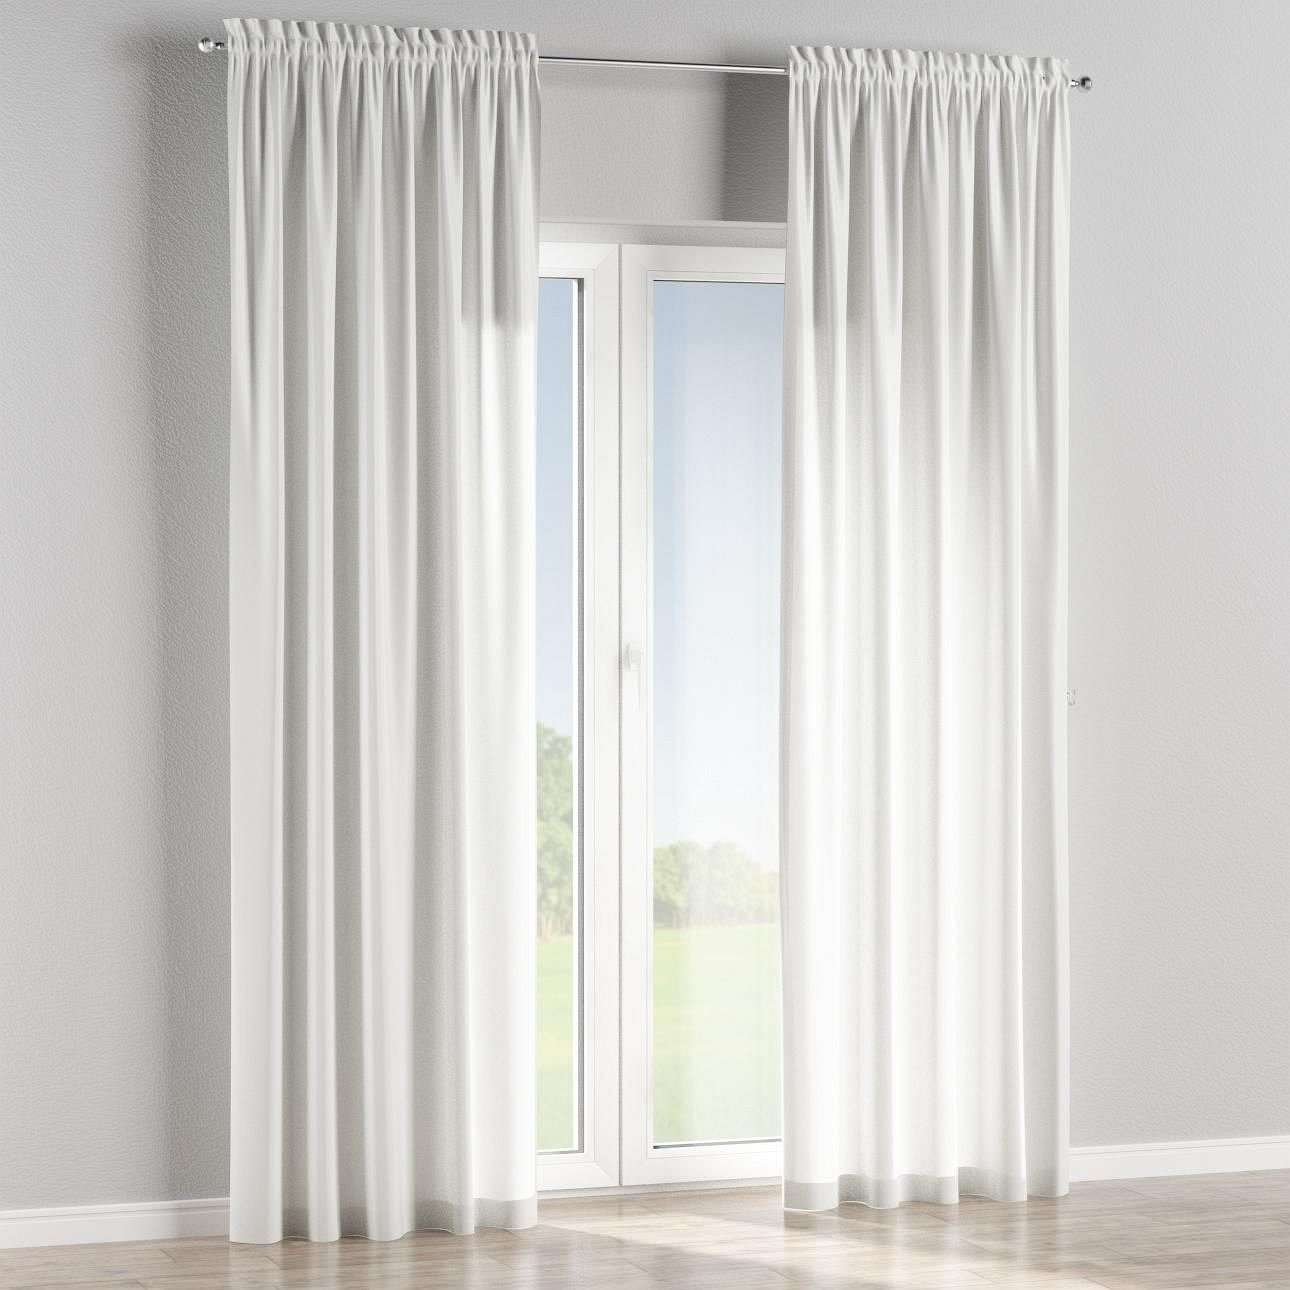 Slot and frill curtains in collection Nordic, fabric: 630-80